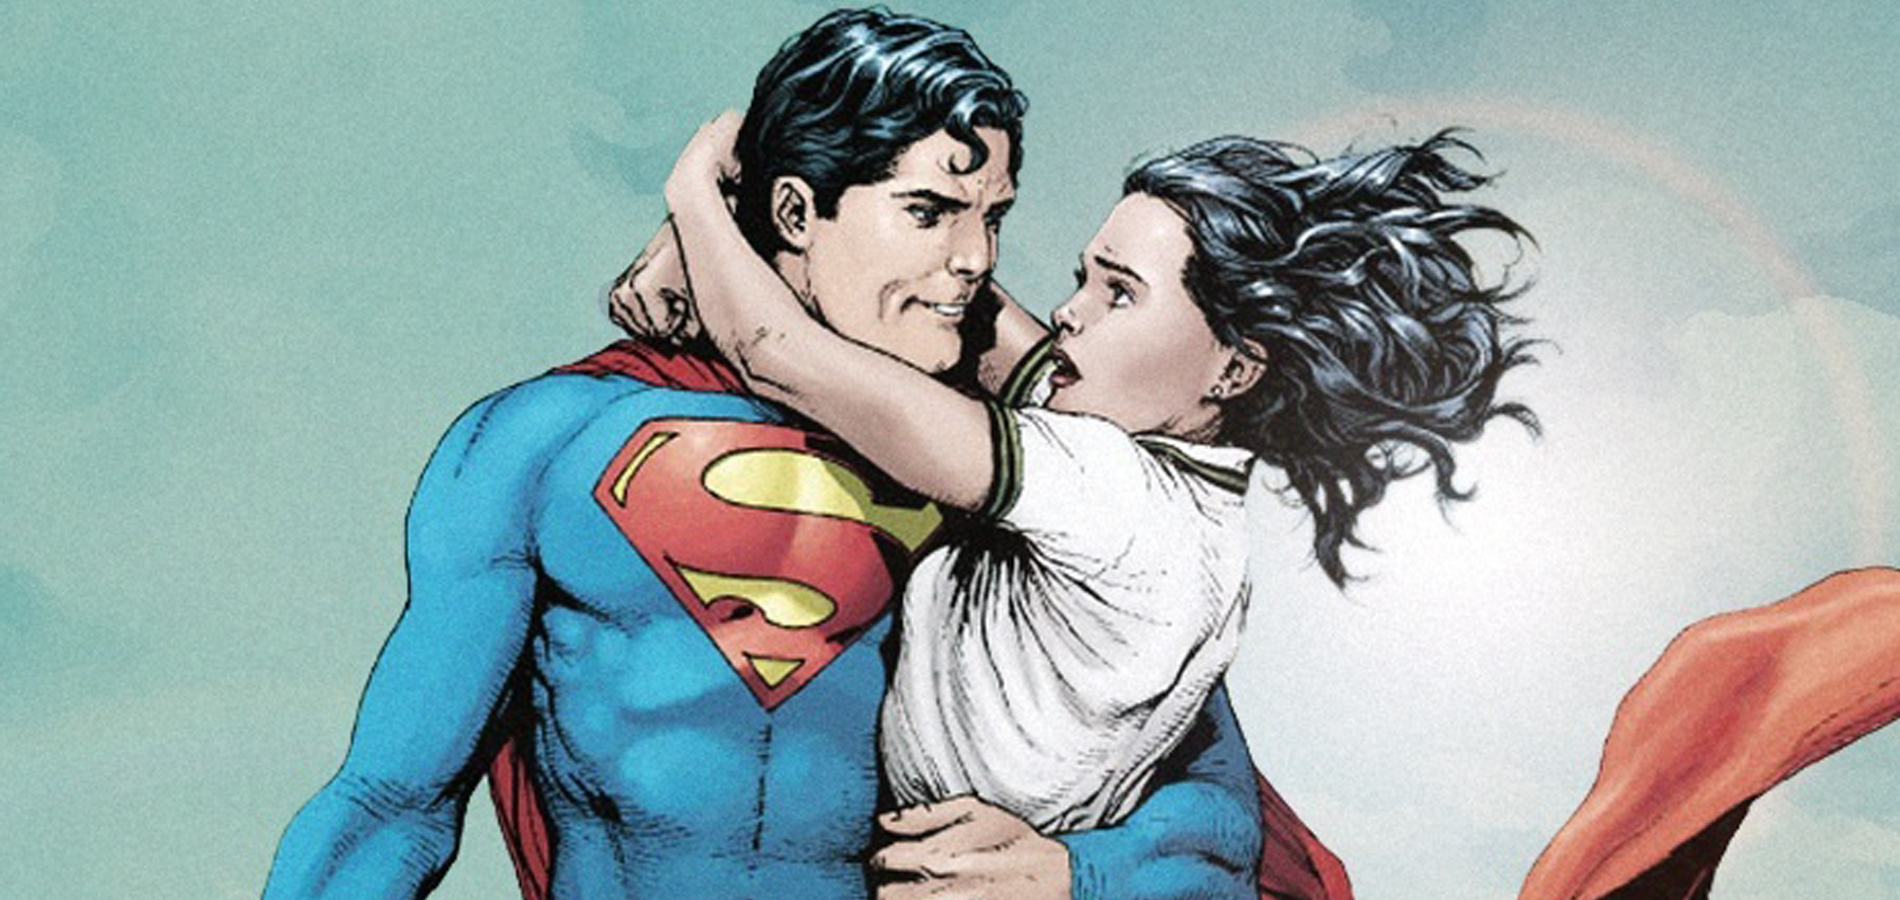 Superman & Lois: Trailer released for the end of season 1